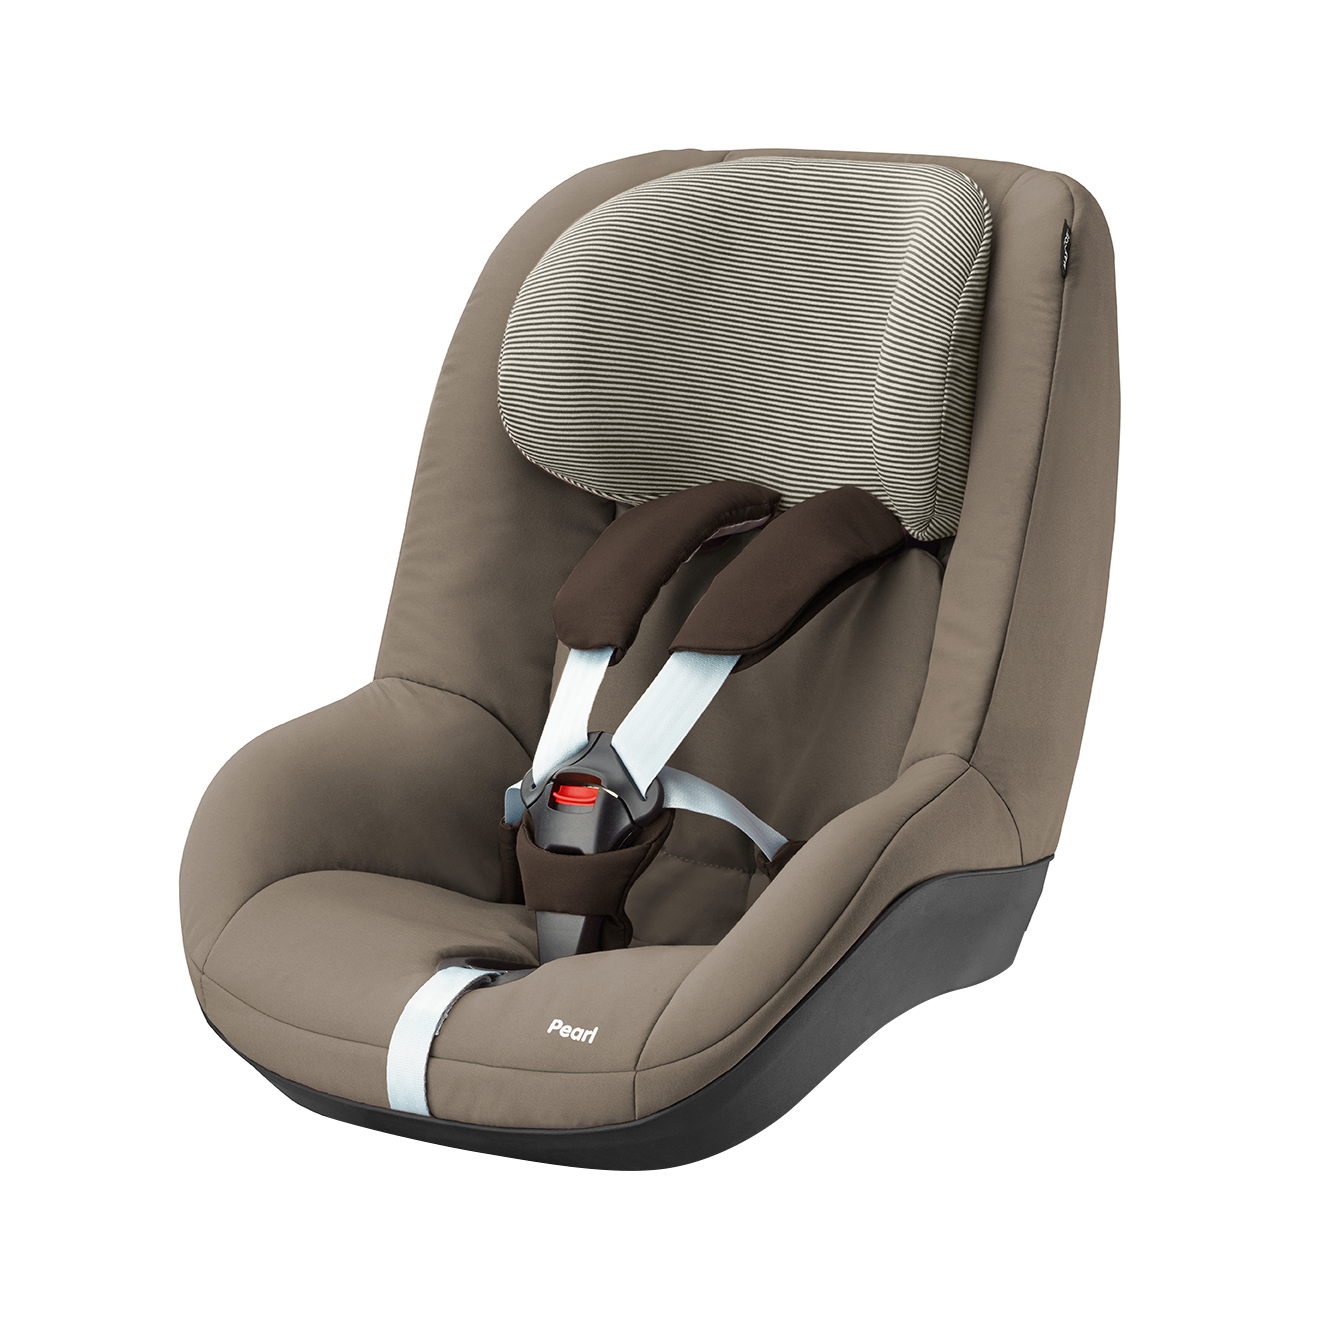 maxi cosi child car seat pearl 2017 earth brown buy at kidsroom car seats. Black Bedroom Furniture Sets. Home Design Ideas